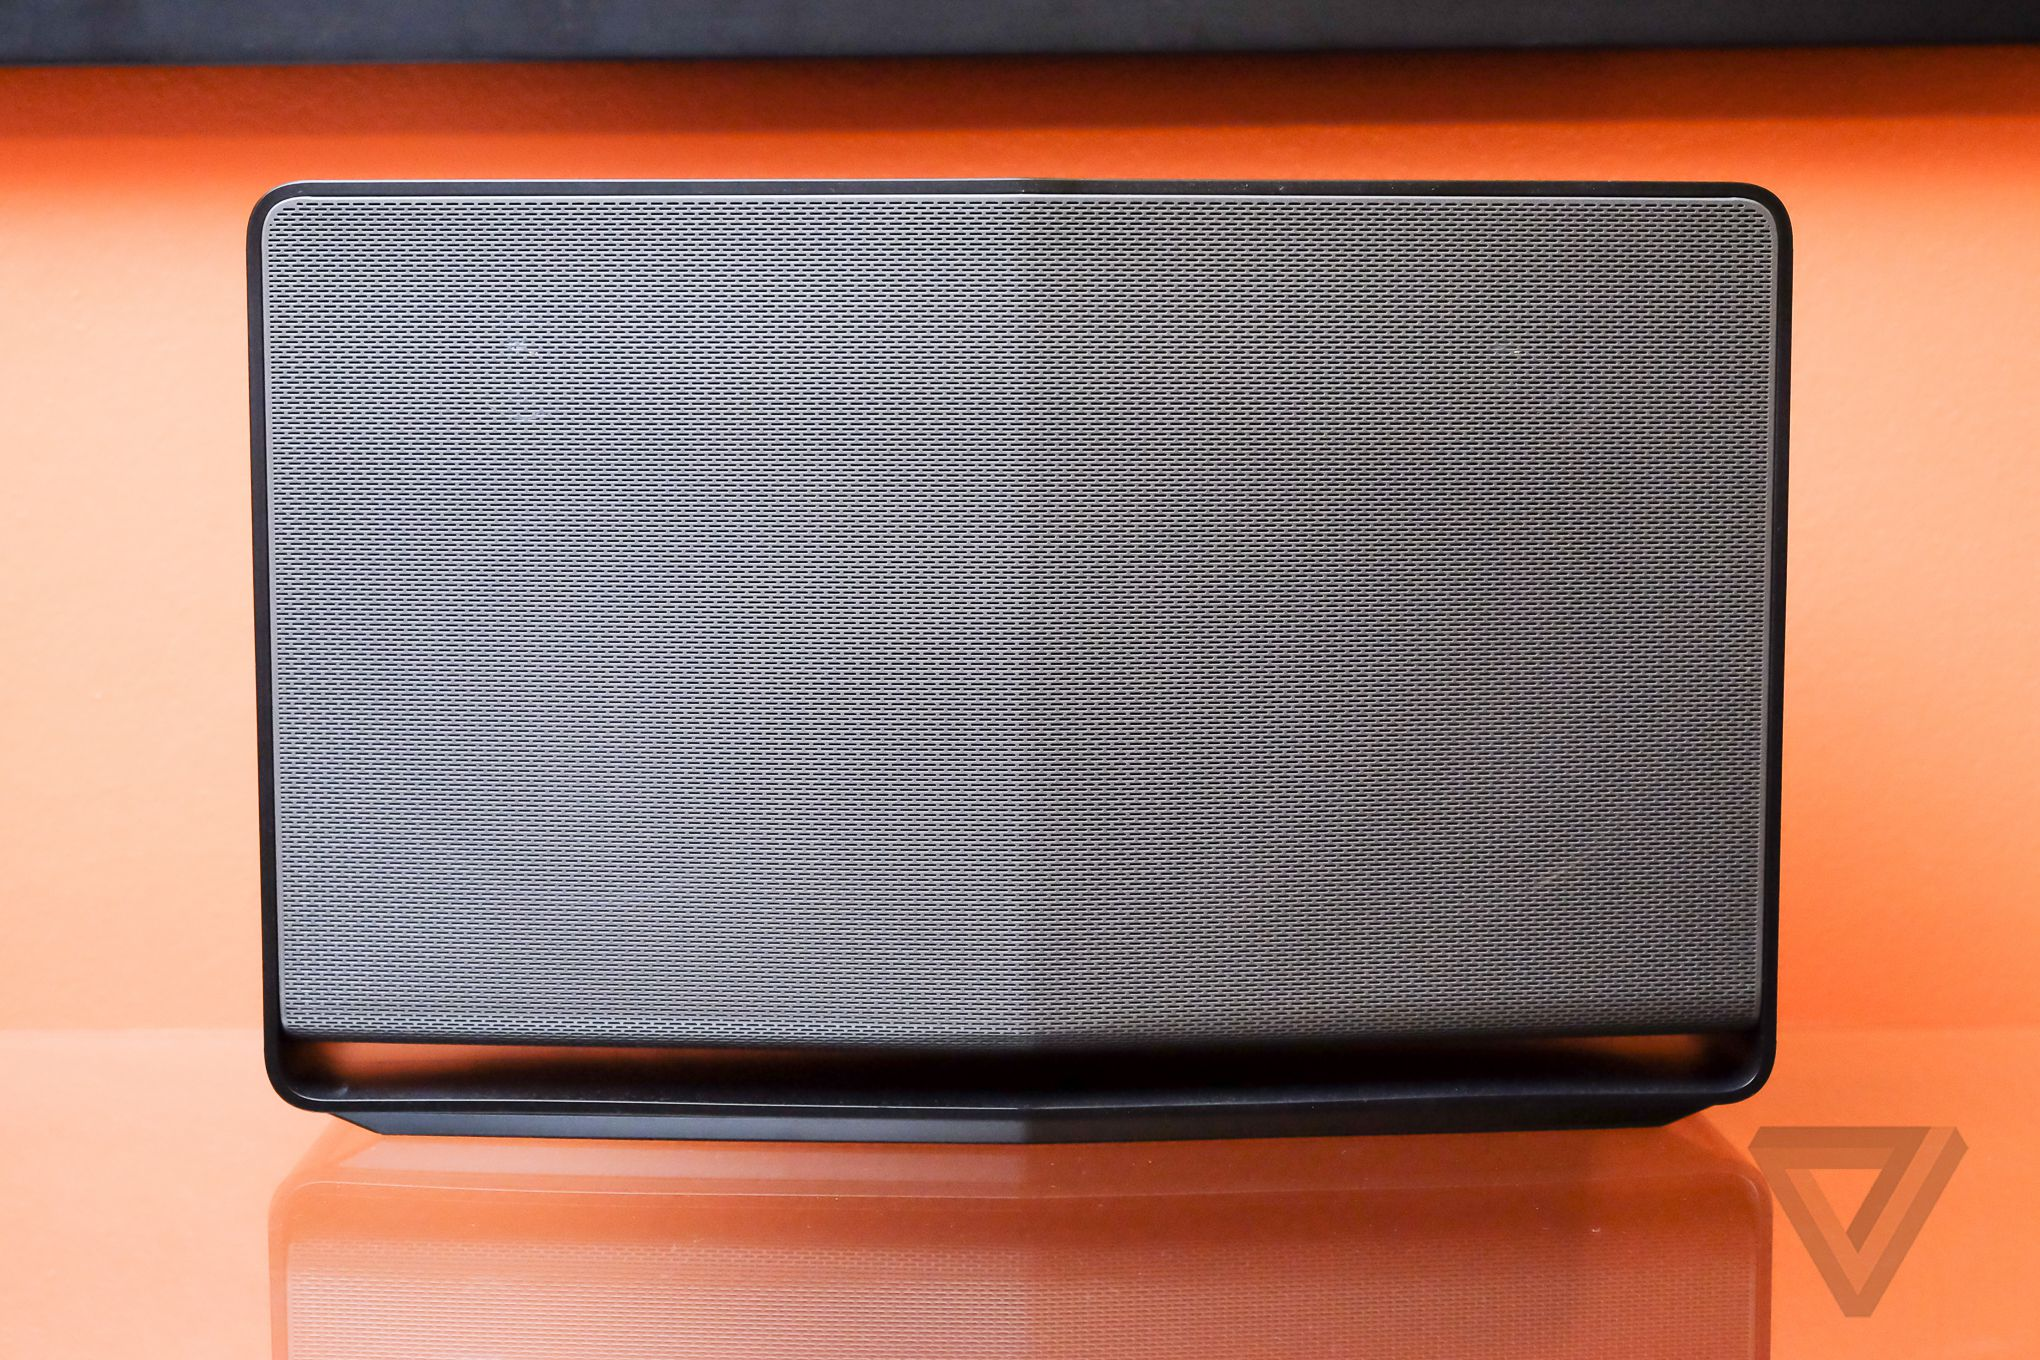 Google's answer to Apple's AirPlay arrives with LG's Music